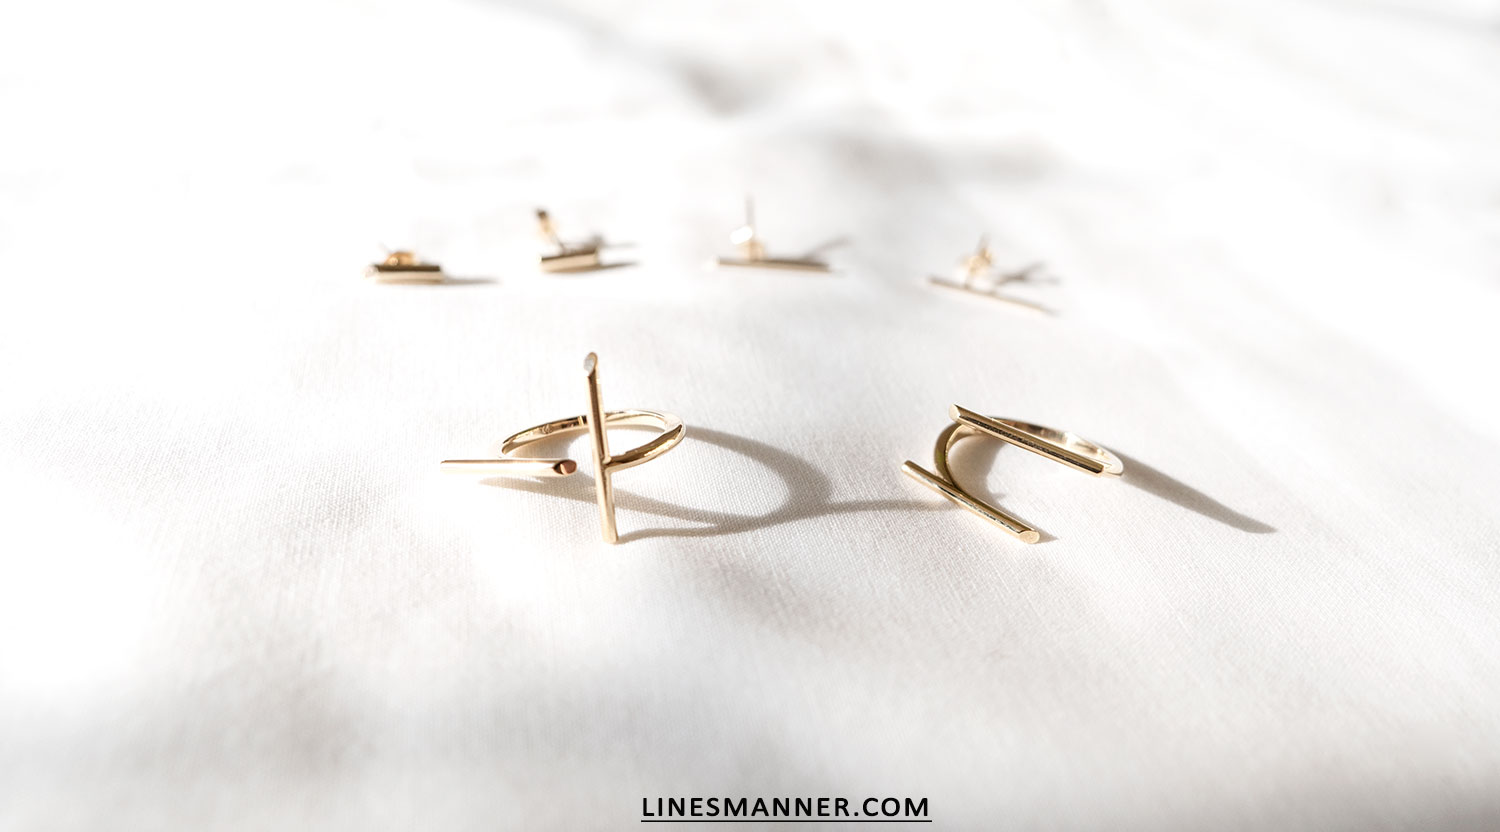 Lines-Manner-Bloglovin-Mejuri-Collaboration-Contest-Minimalism-Edge-NYC-Scandinavian-Pure_and_Simple-Essentials-Details-Gold-Vermeil-Jewelry-Rings-Earrings-White-Whiteout-Subtil-Linear-Geometric-6